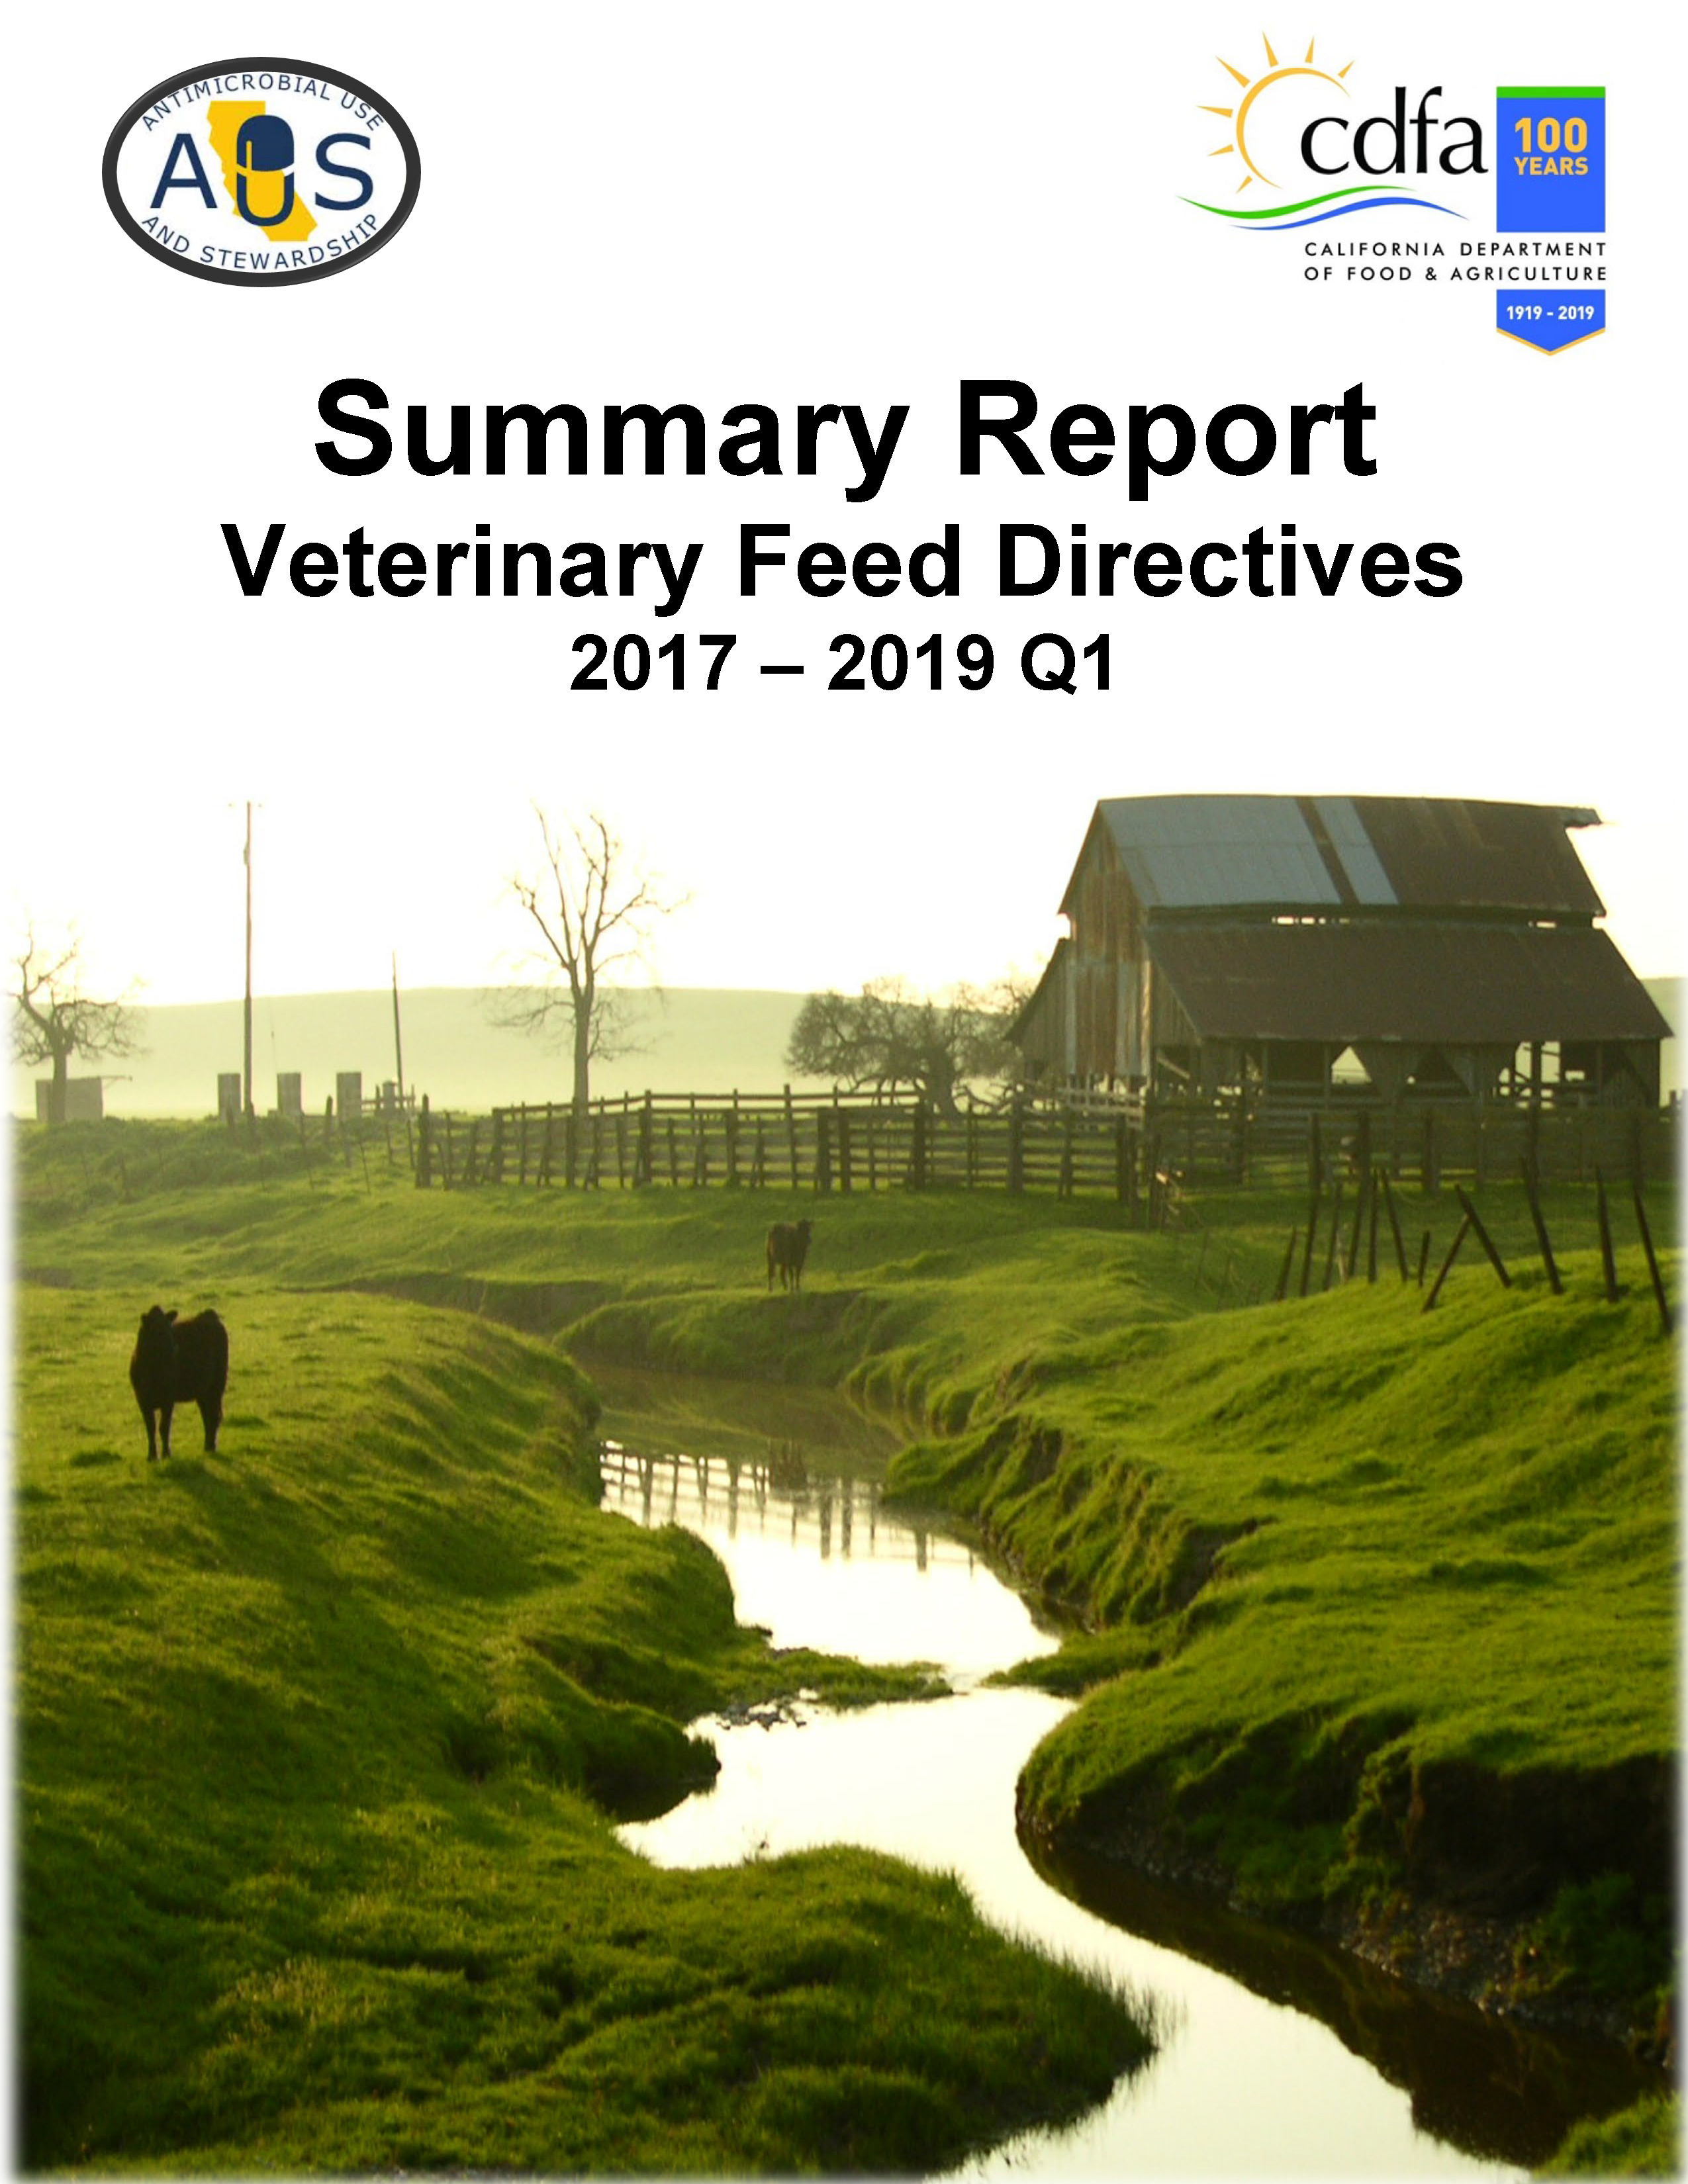 Annual Summary Report Veterinary Feed Directives 2019